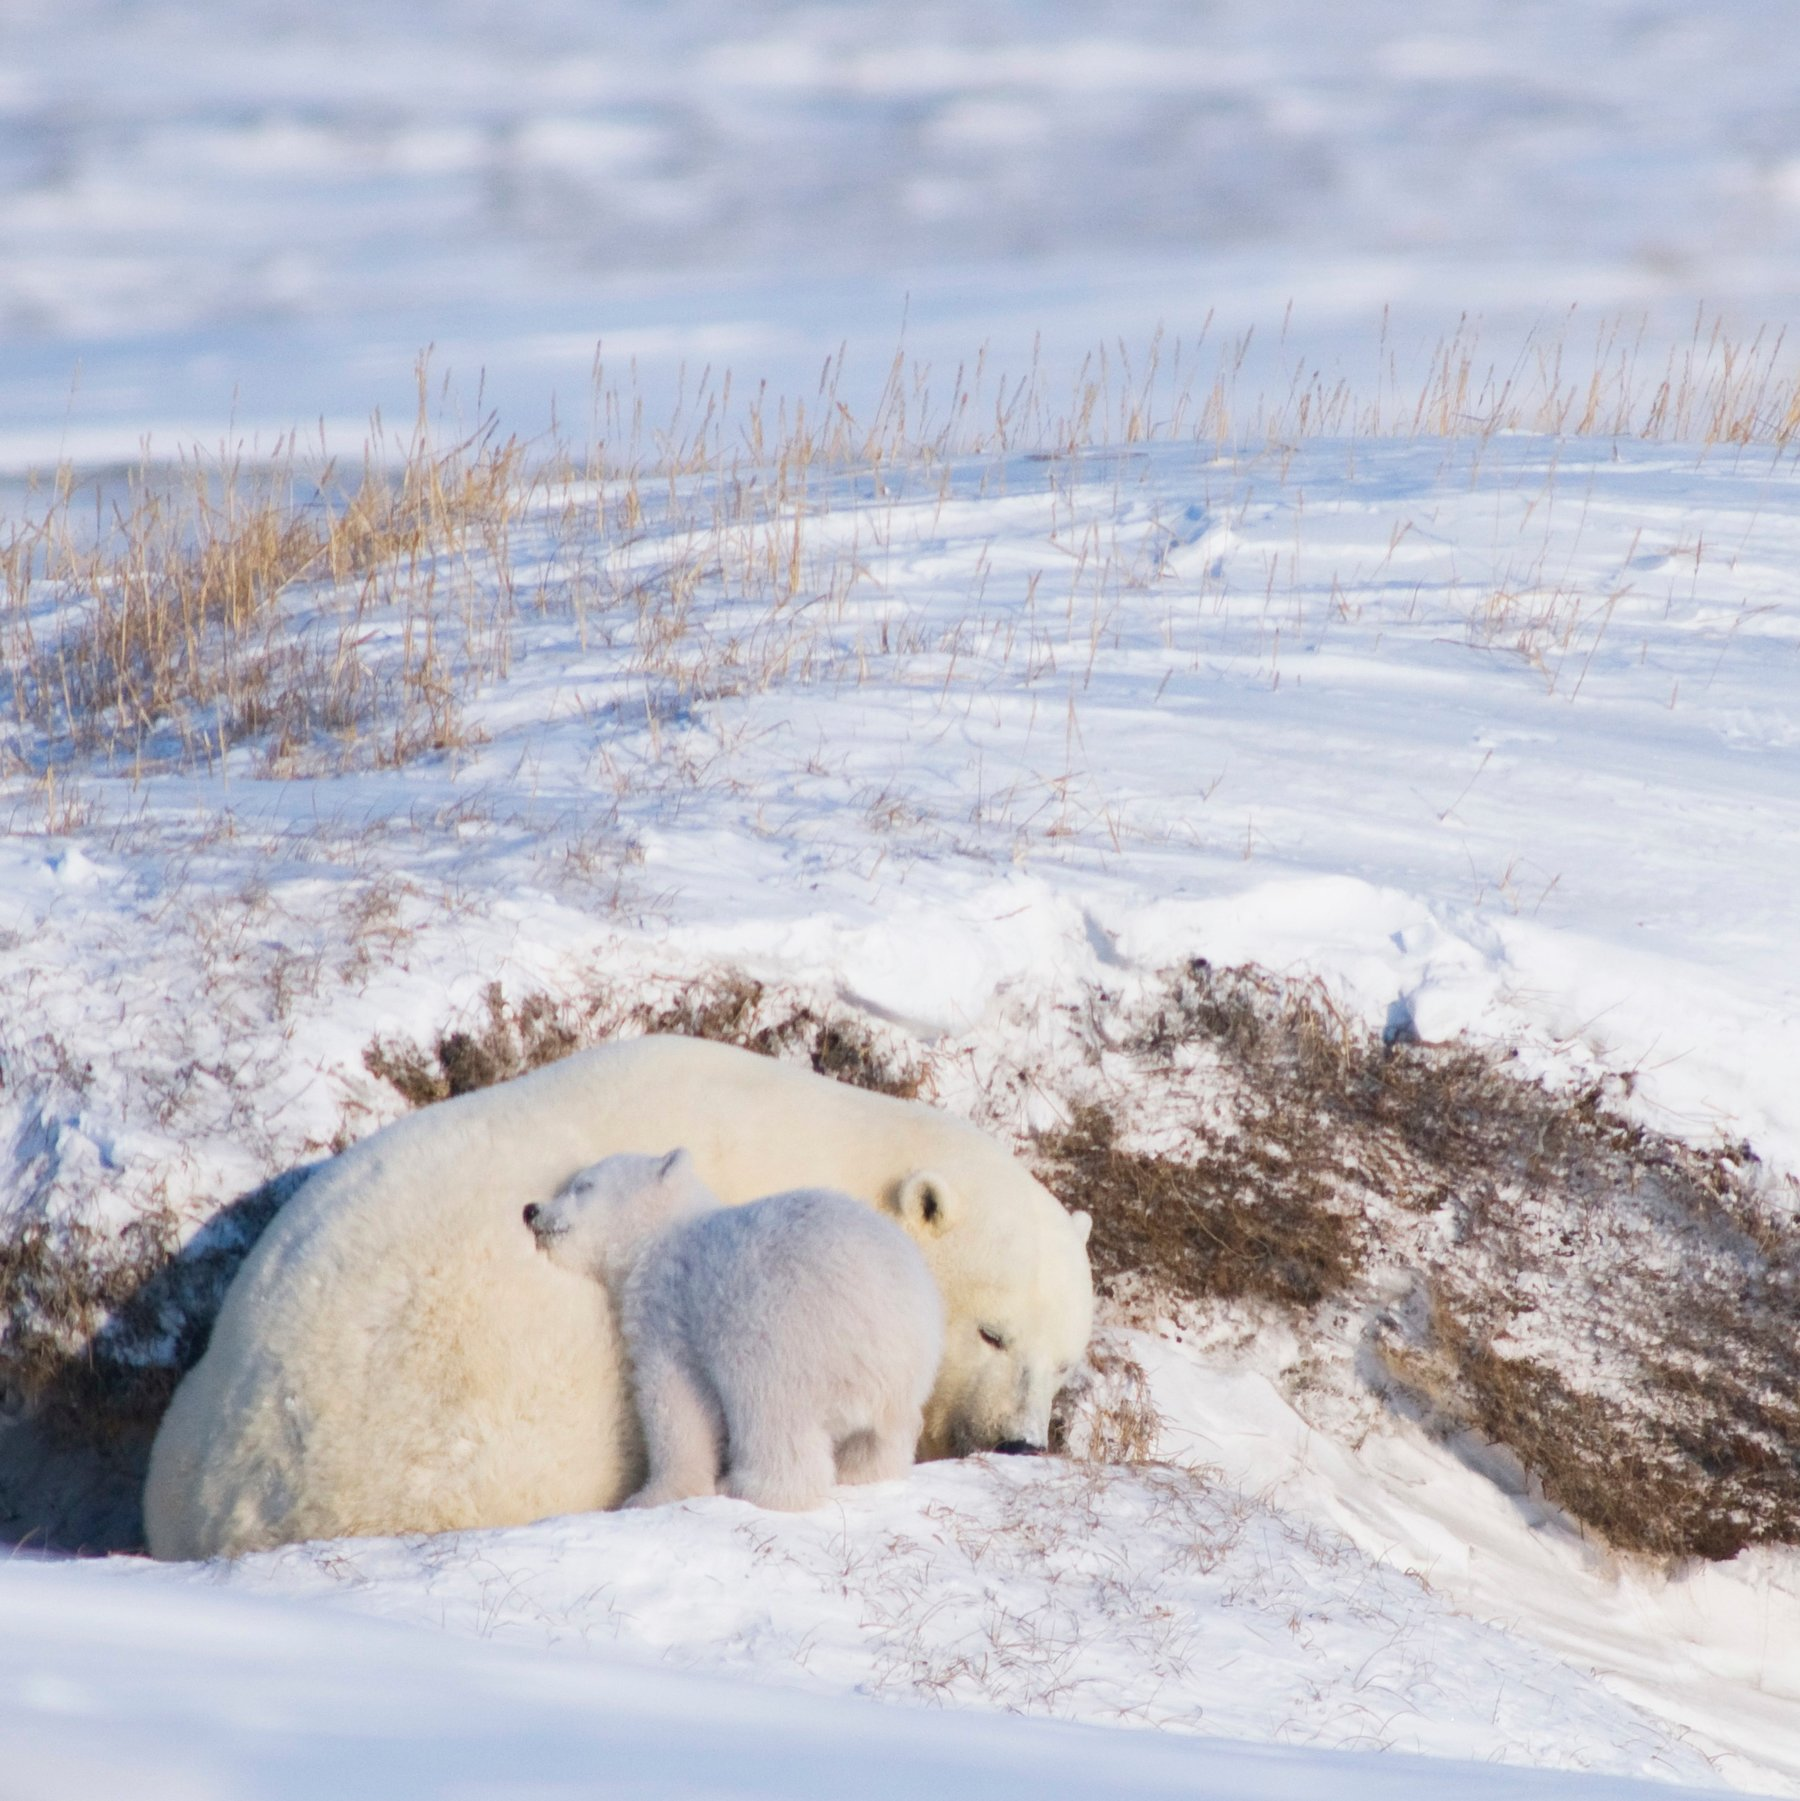 Oil Industry Tool To Spare Polar Bears Is More Miss Than Hit The New York Times